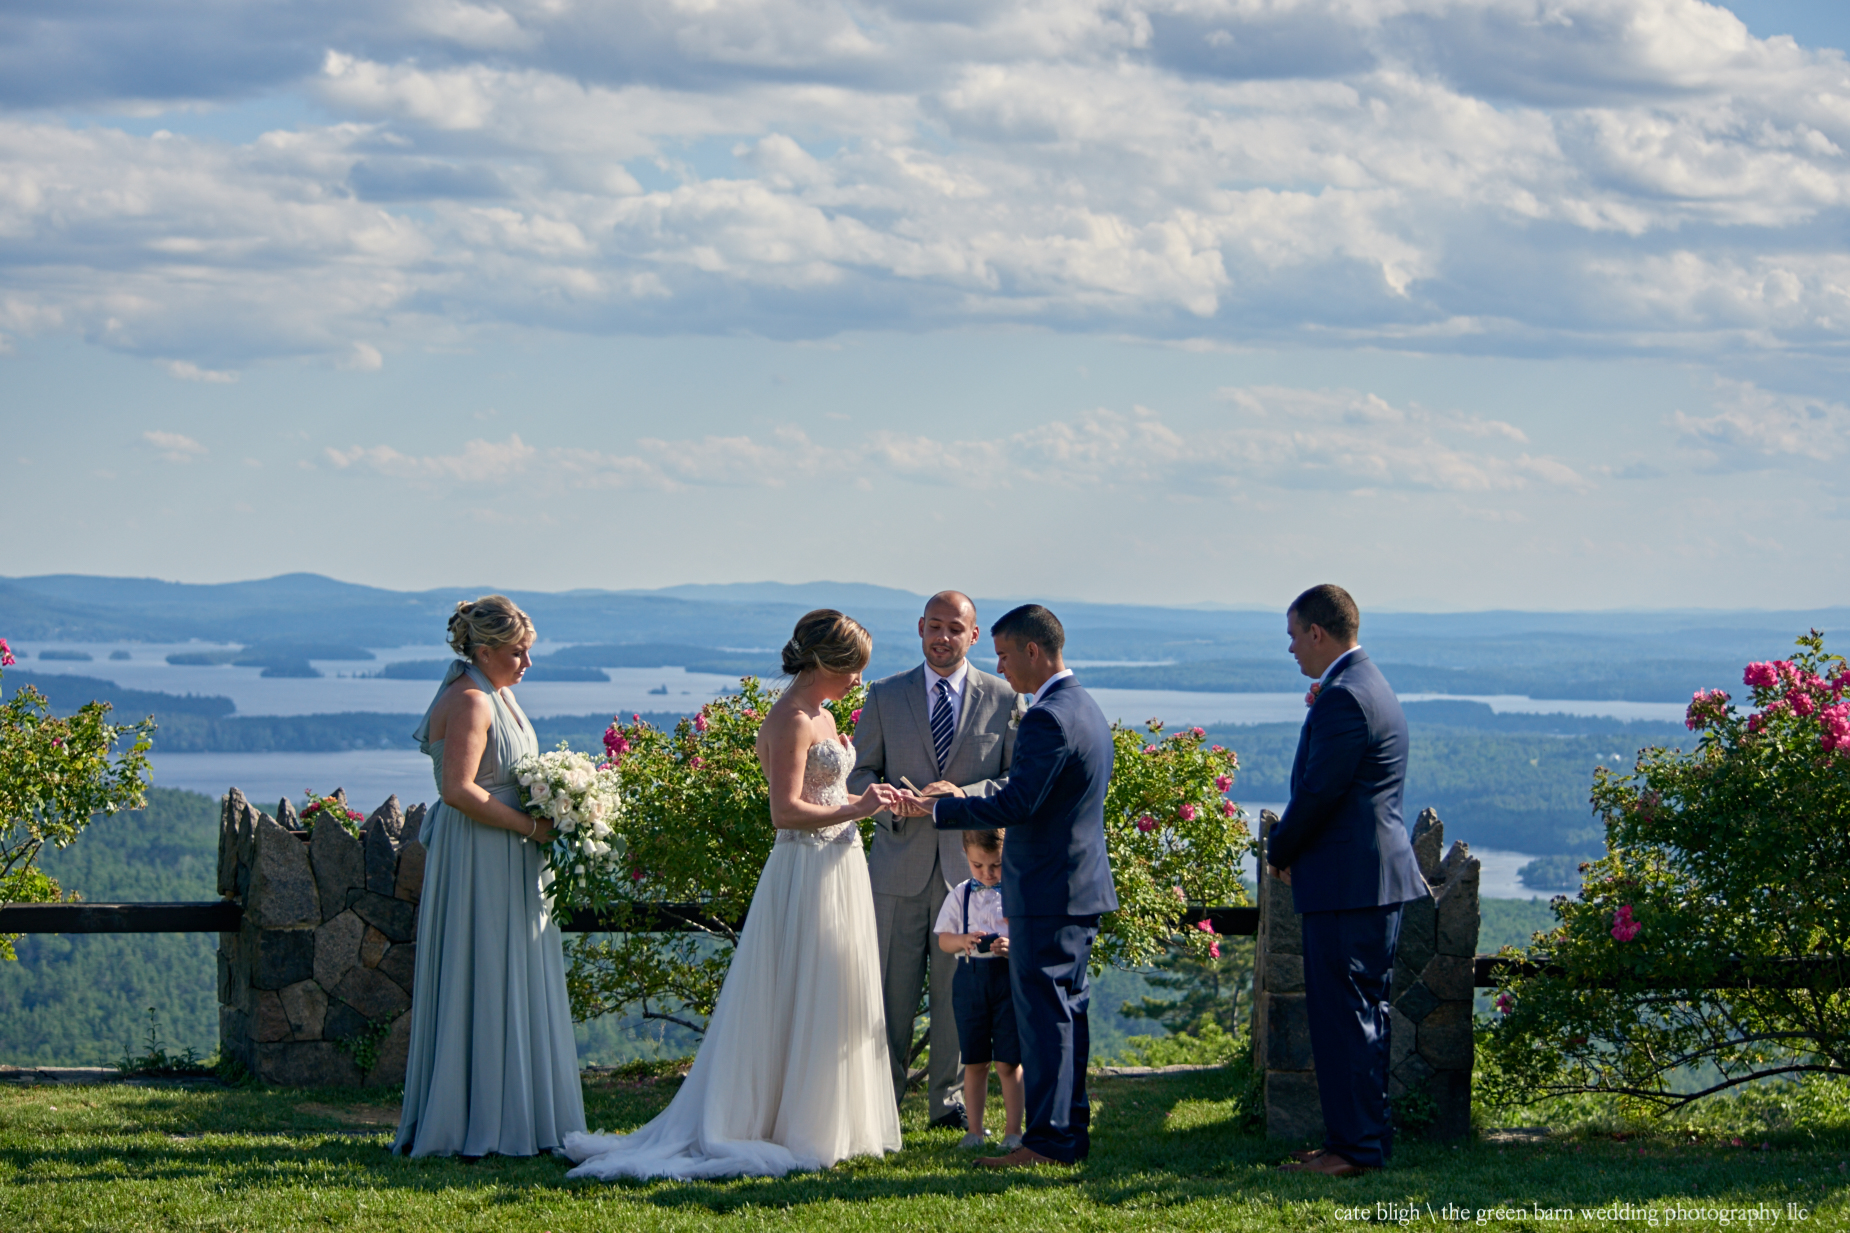 Castle in the Clouds wedding ceremony outdoors